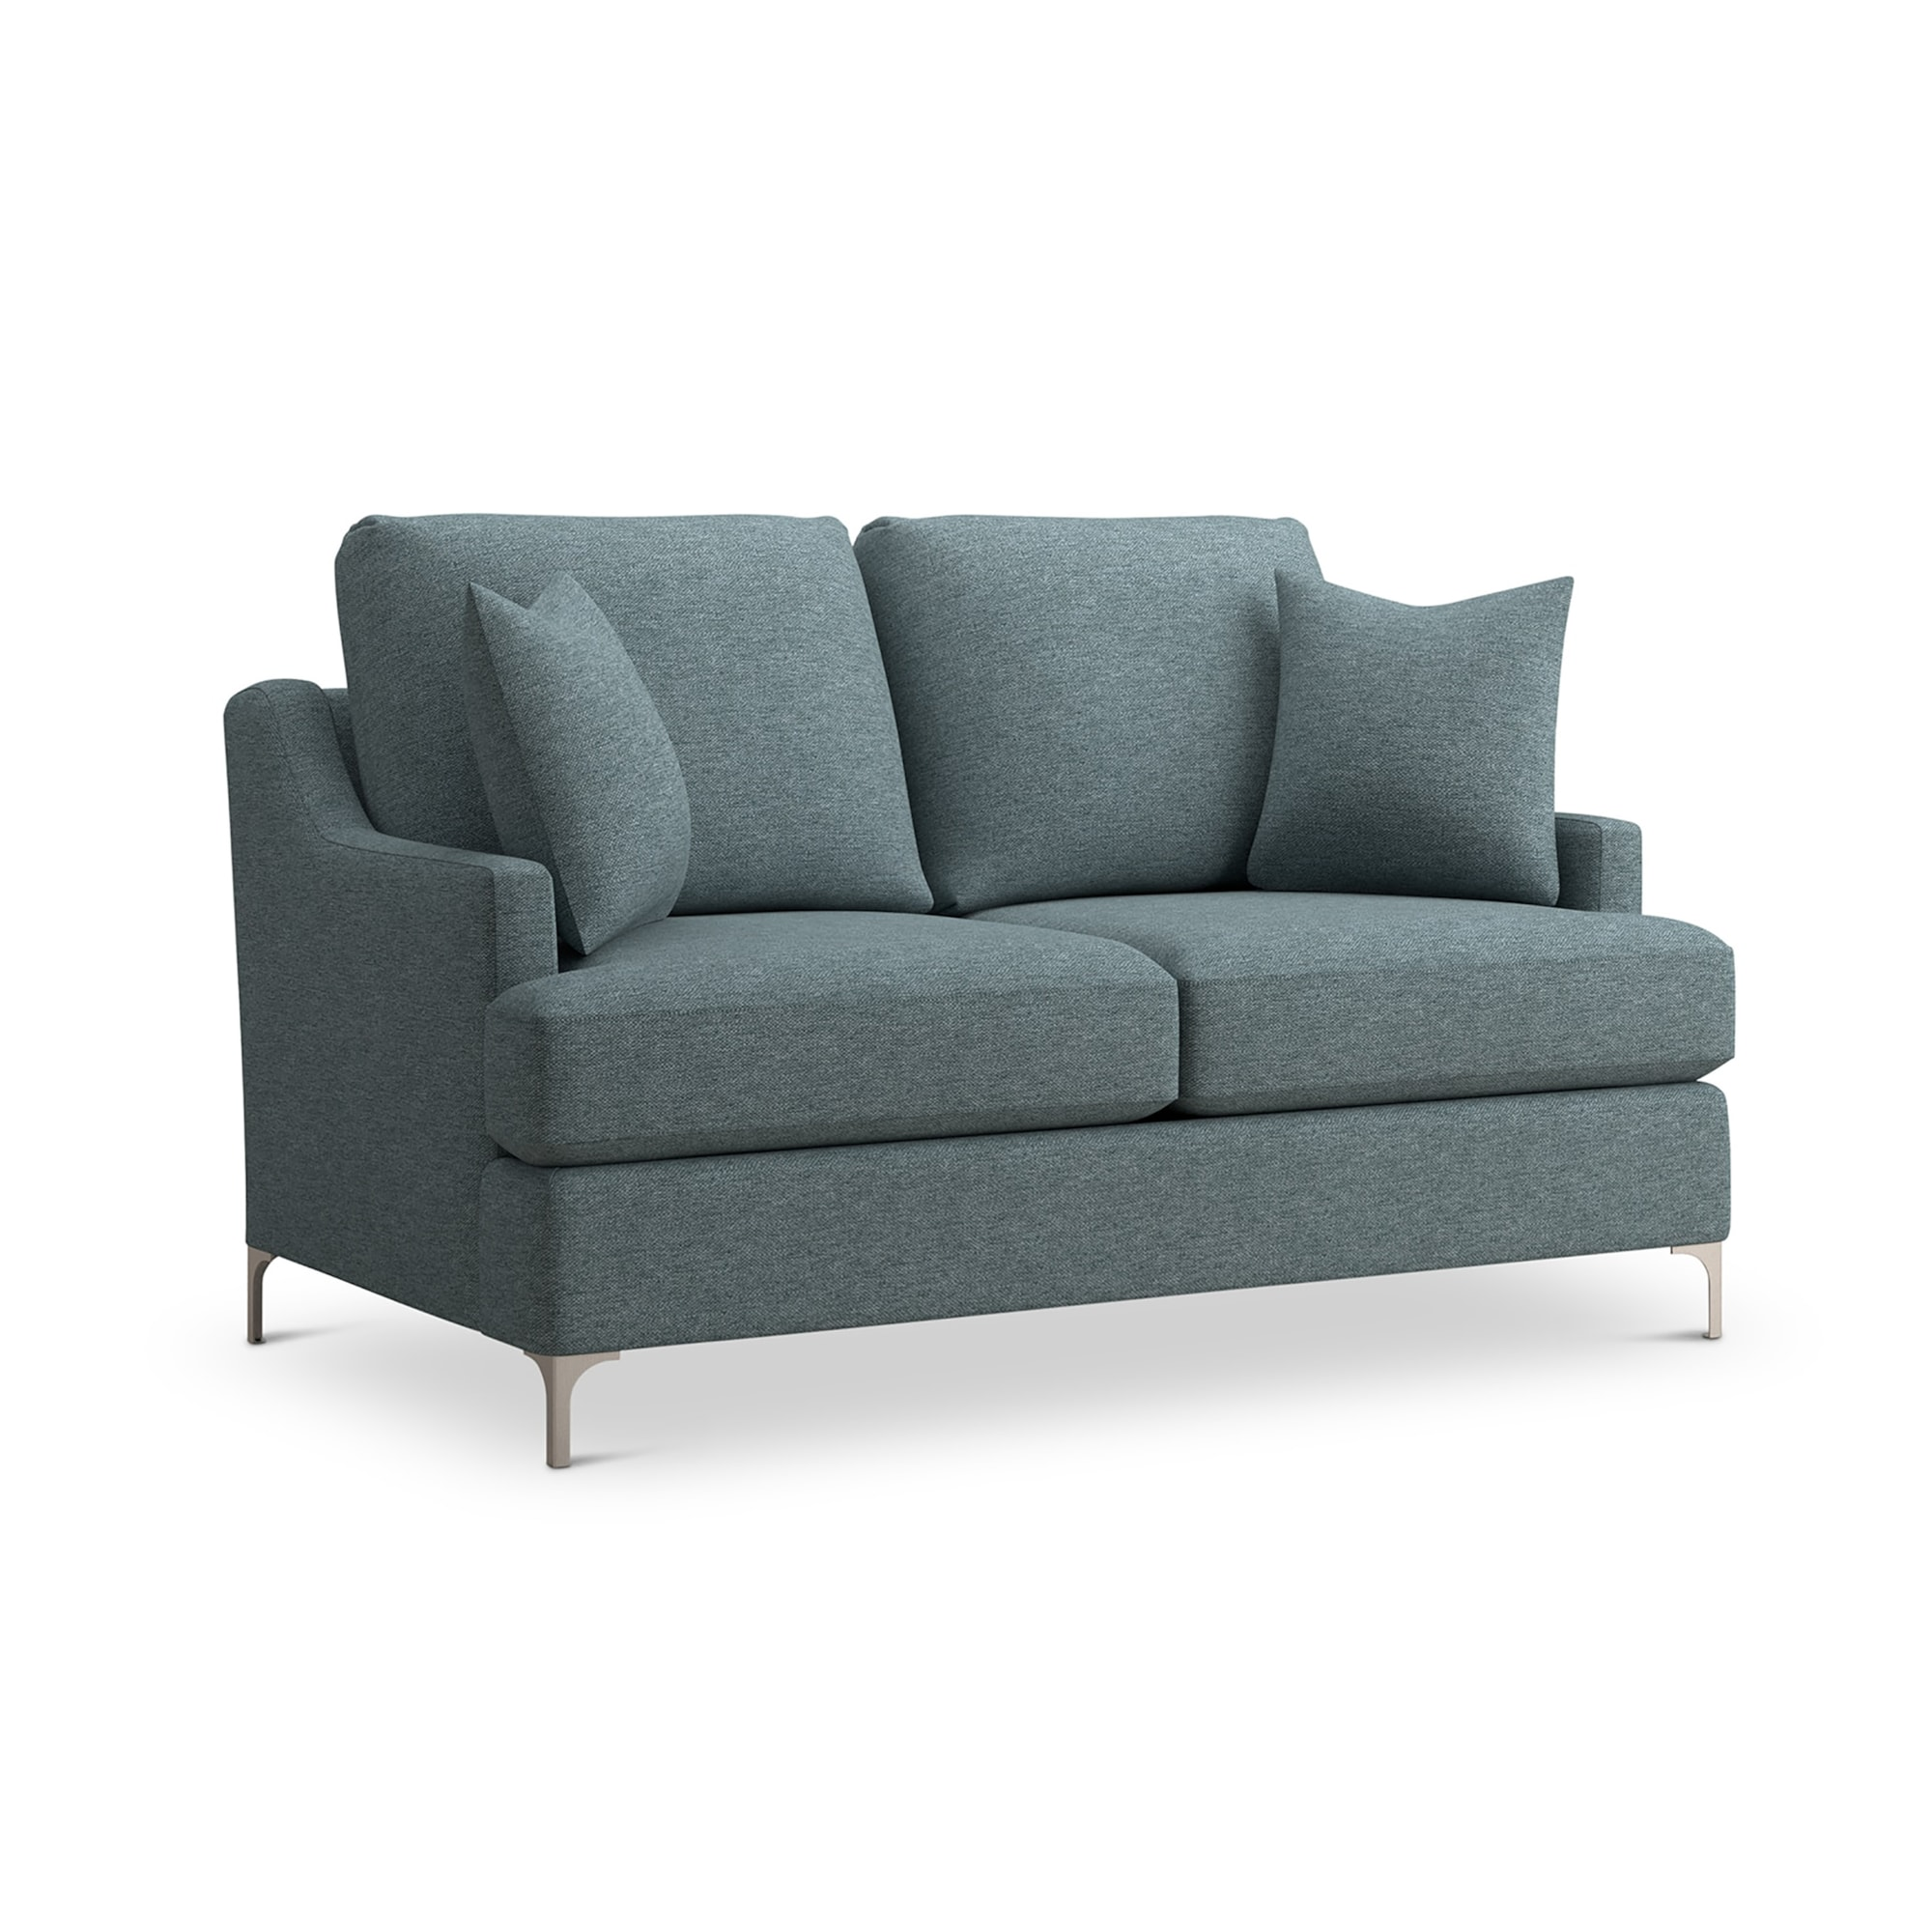 Cottage Sofa With Rustic Grey Wood Legs